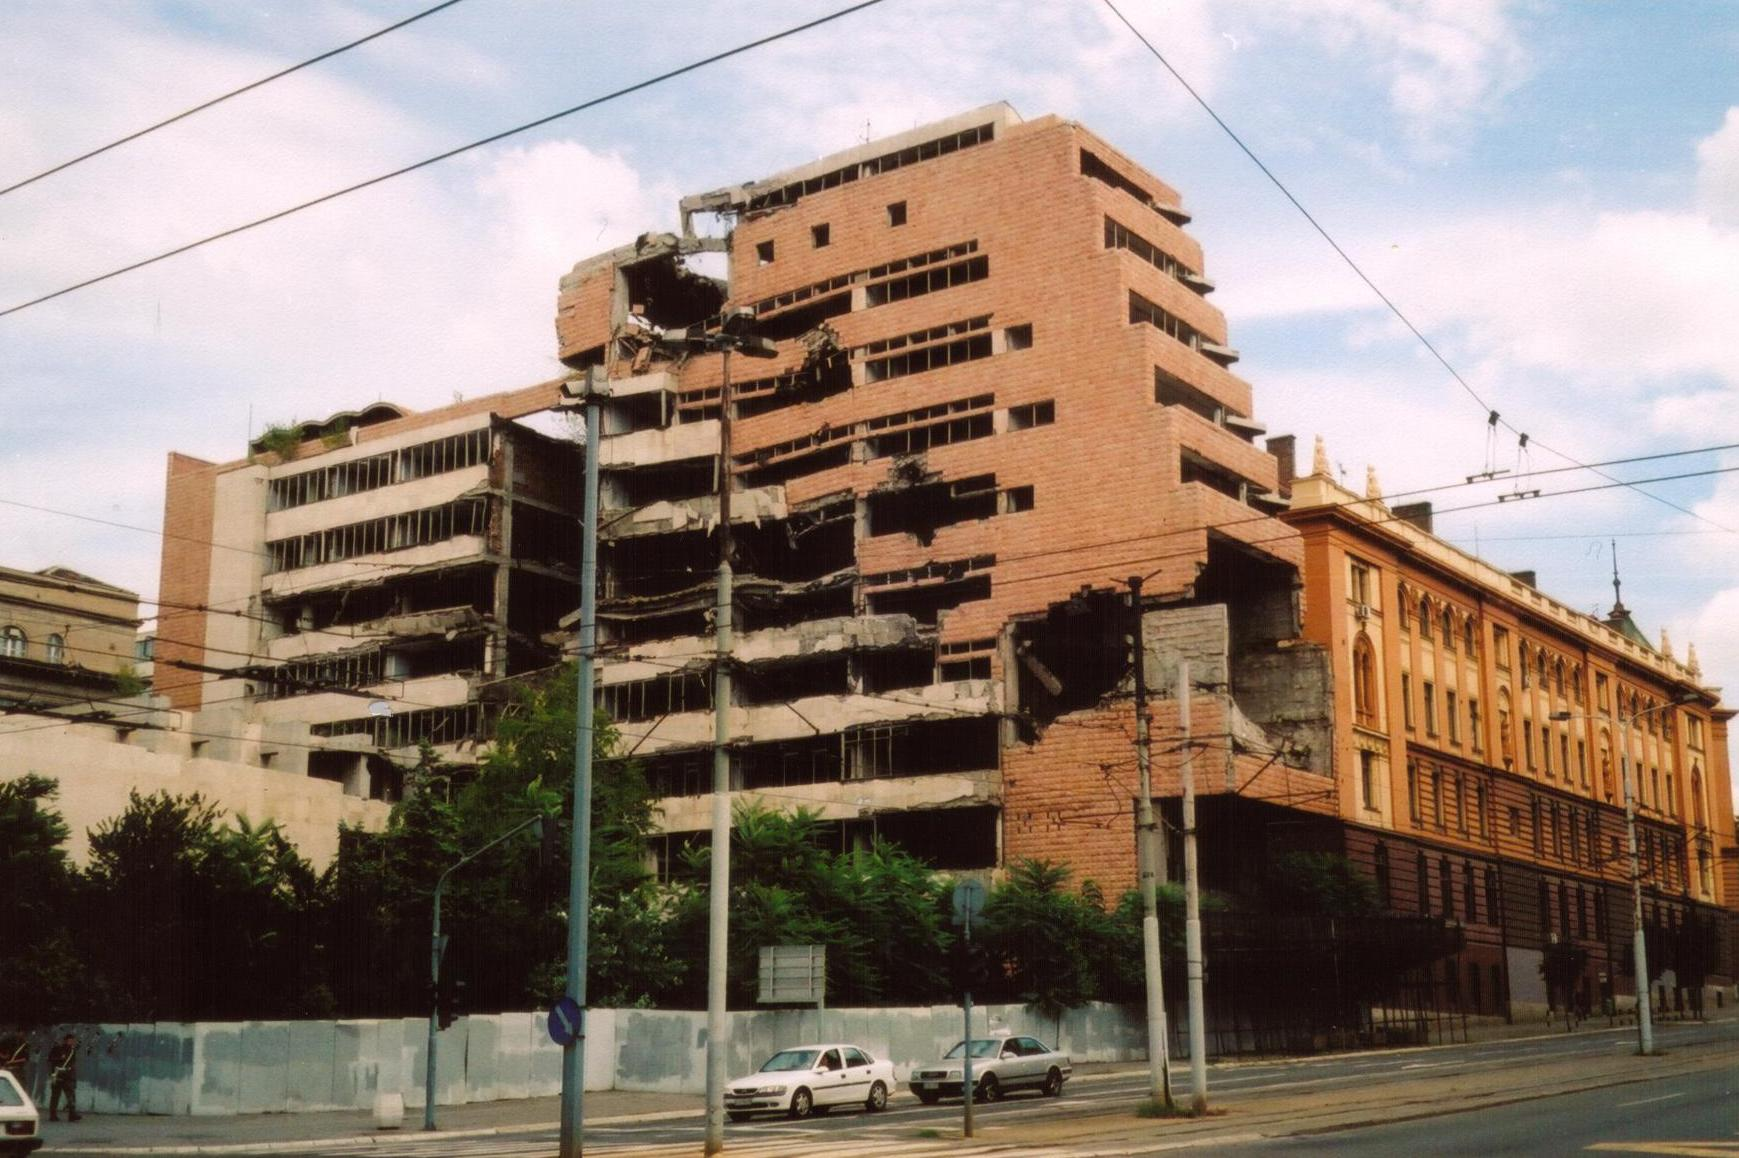 The bombing of the chinese embassy in yugoslavia by nato